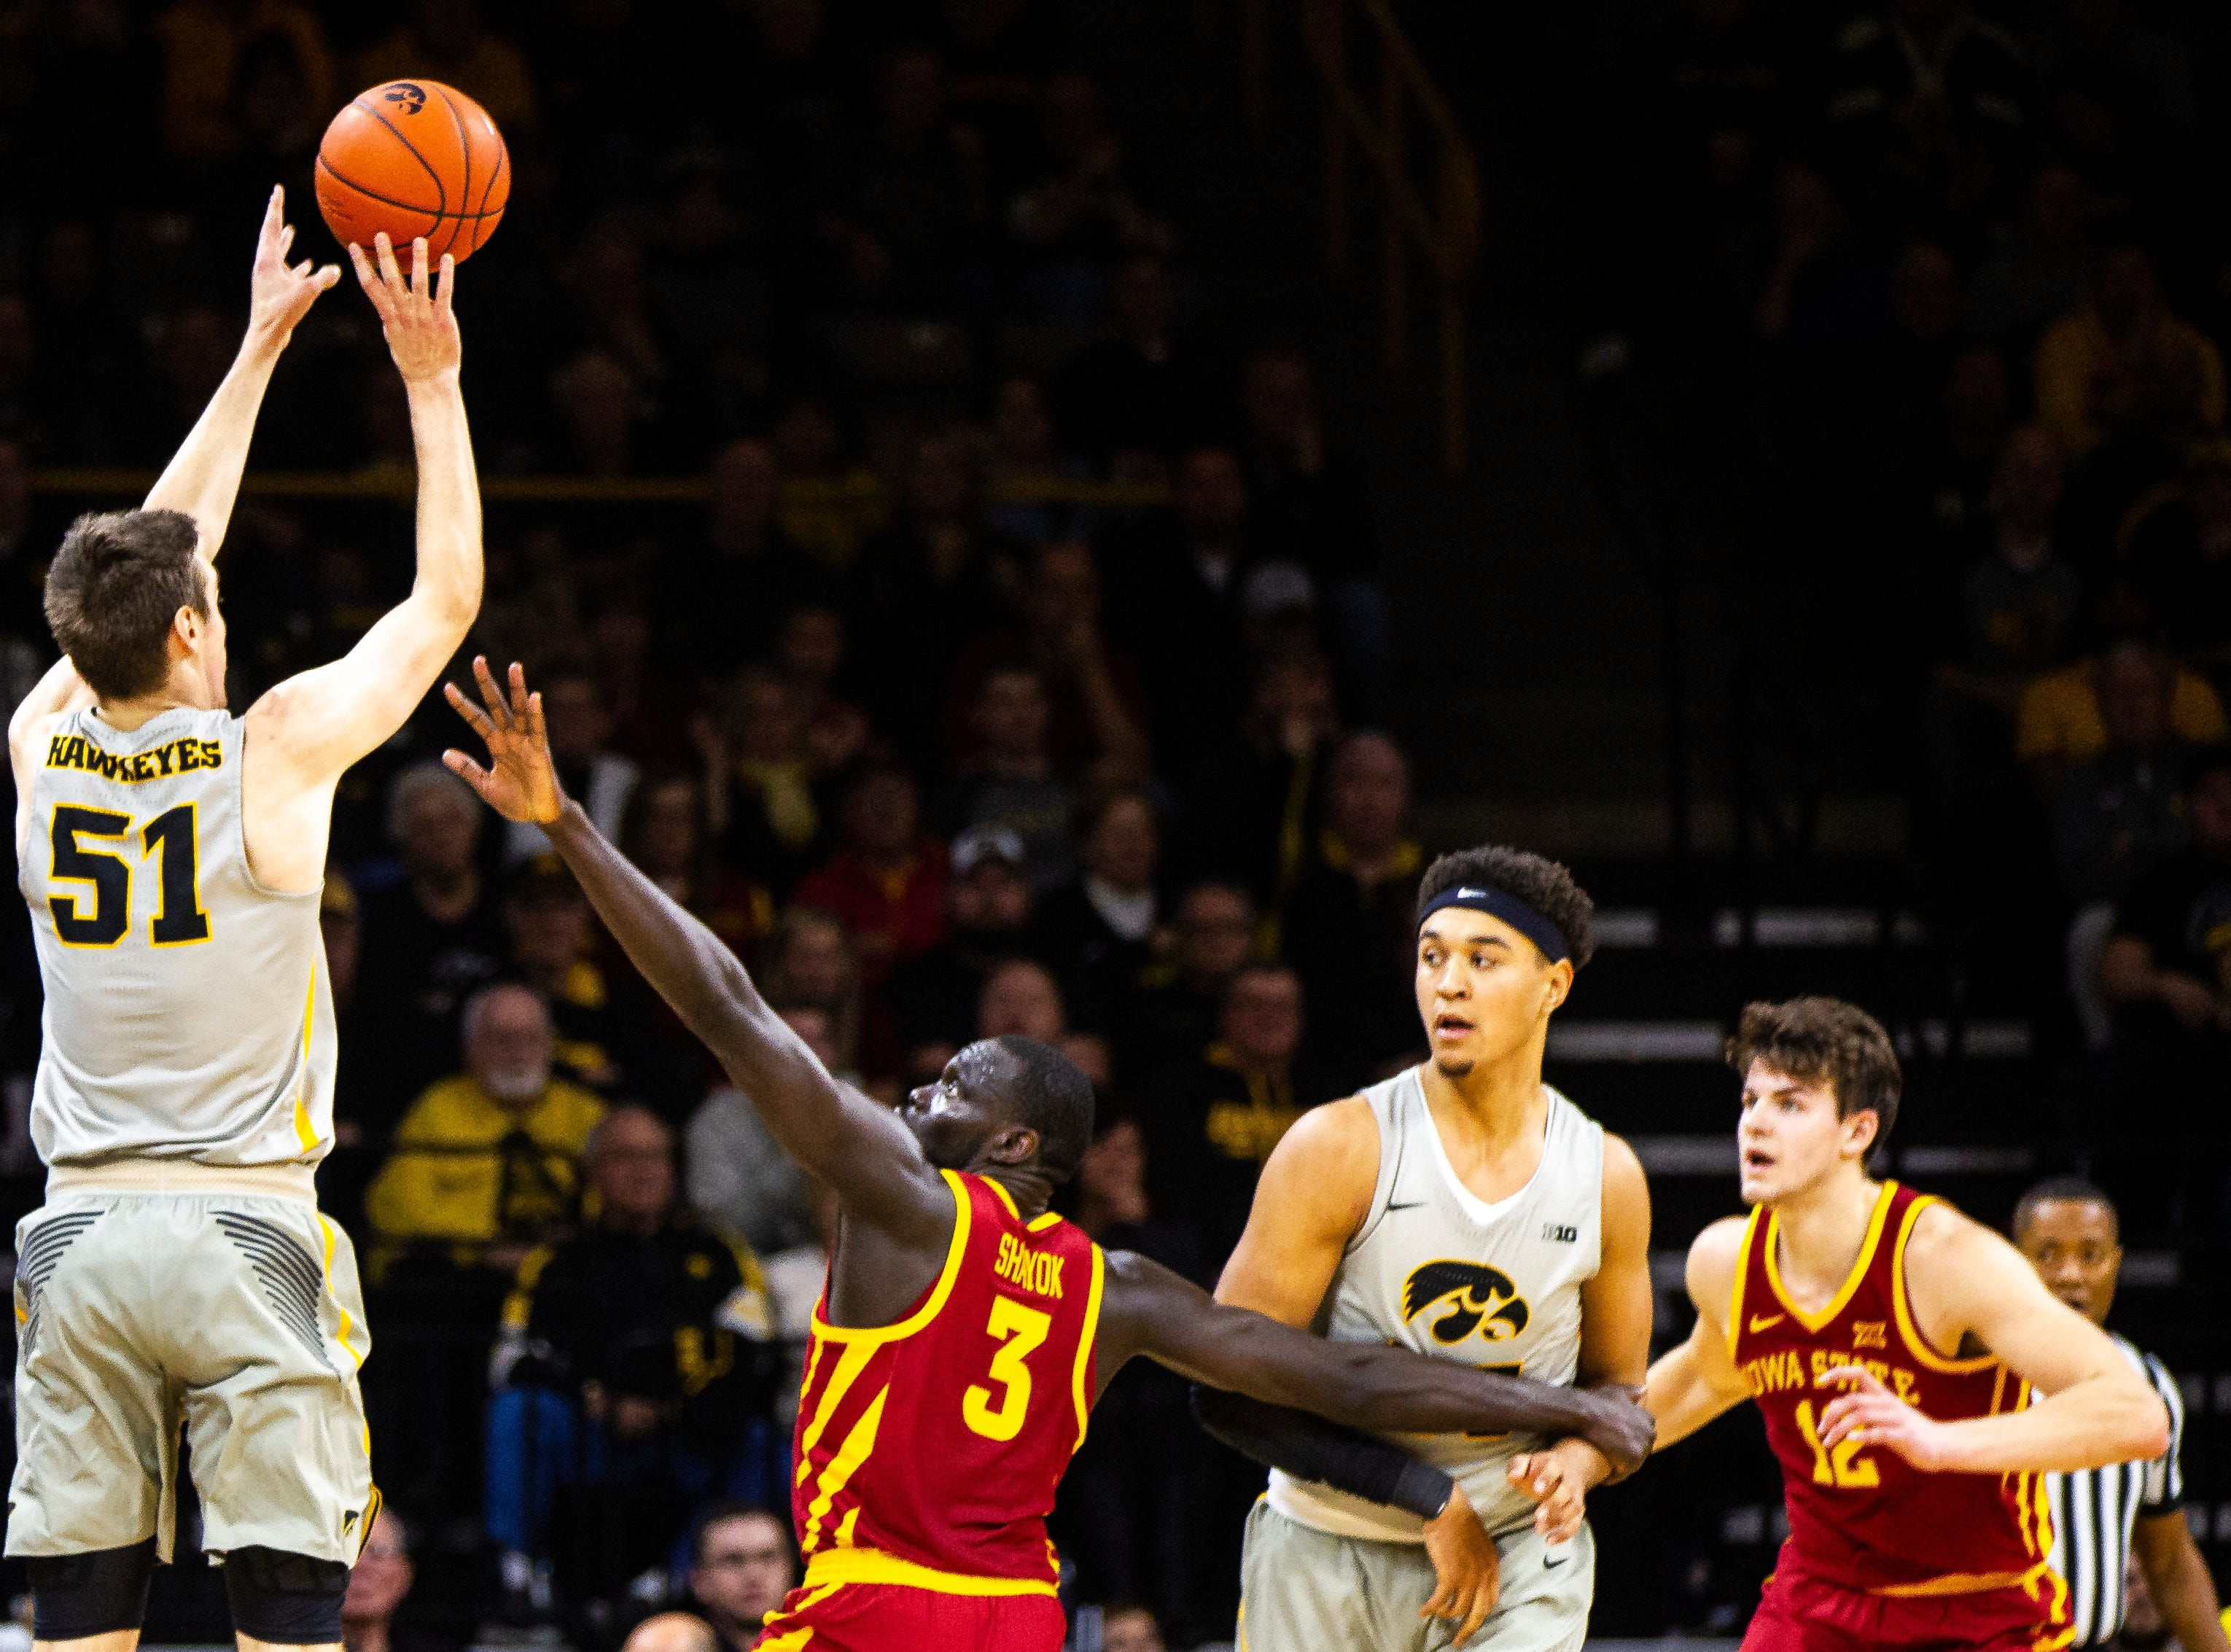 Iowa forward Nicholas Baer (51) shoots a 3-point basket past Iowa State guard Marial Shayok (3) during a NCAA Cy-Hawk series men's basketball game on Thursday, Dec. 6, 2018, at Carver-Hawkeye Arena in Iowa City.